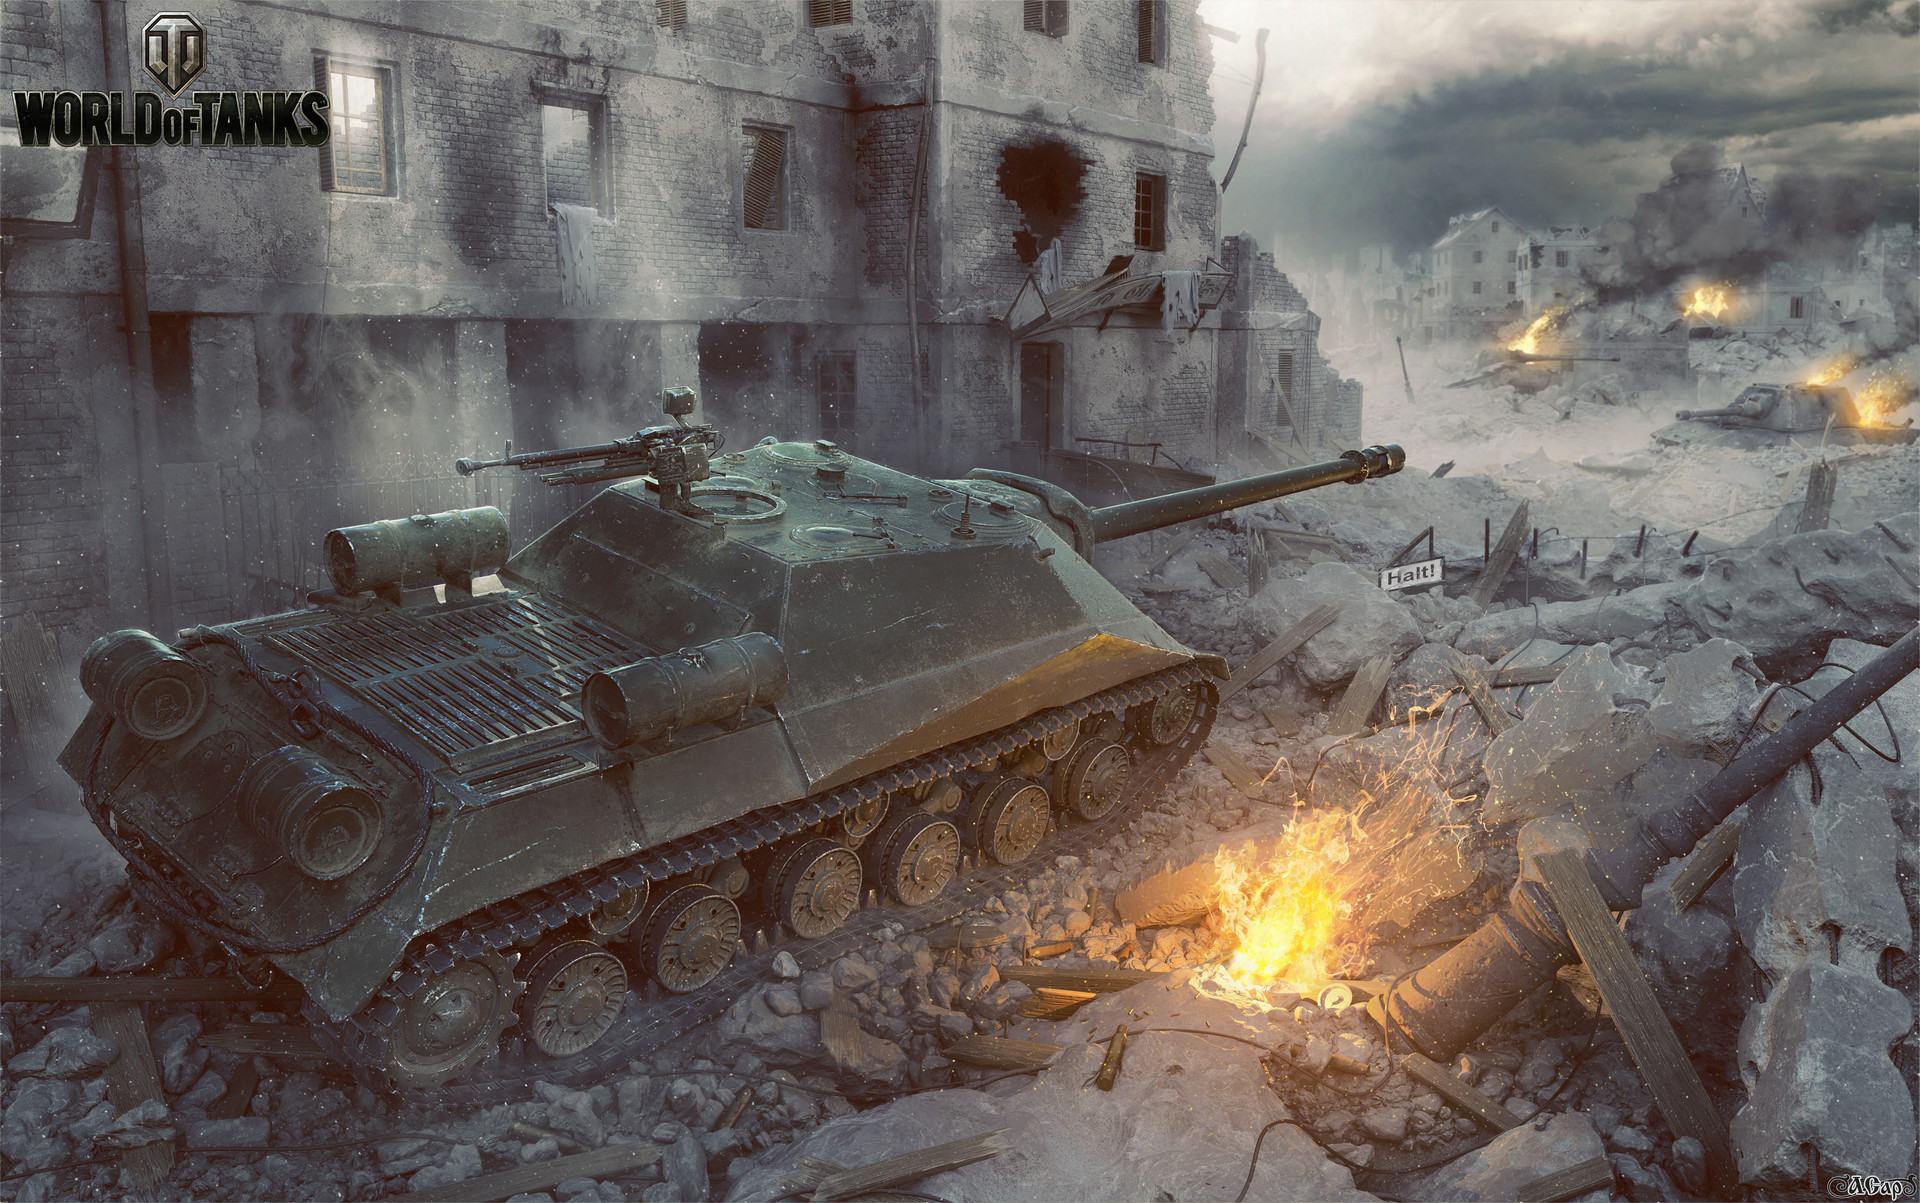 World of Tanks Art by Andrey Sarafanov